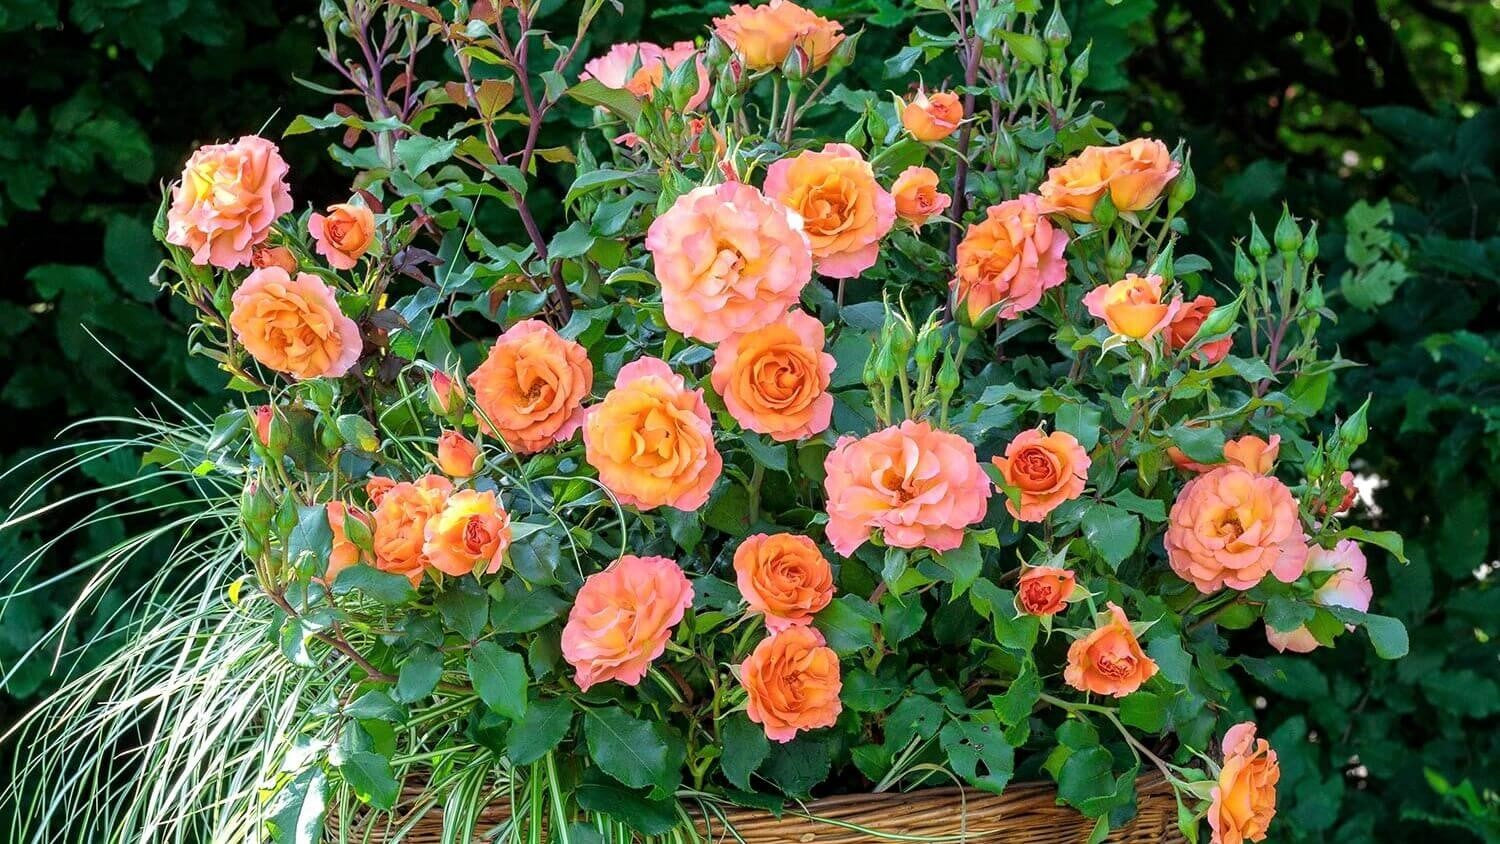 Rose bushes for Belgium. We deliver bare root and potted garden roses all over Belgium.